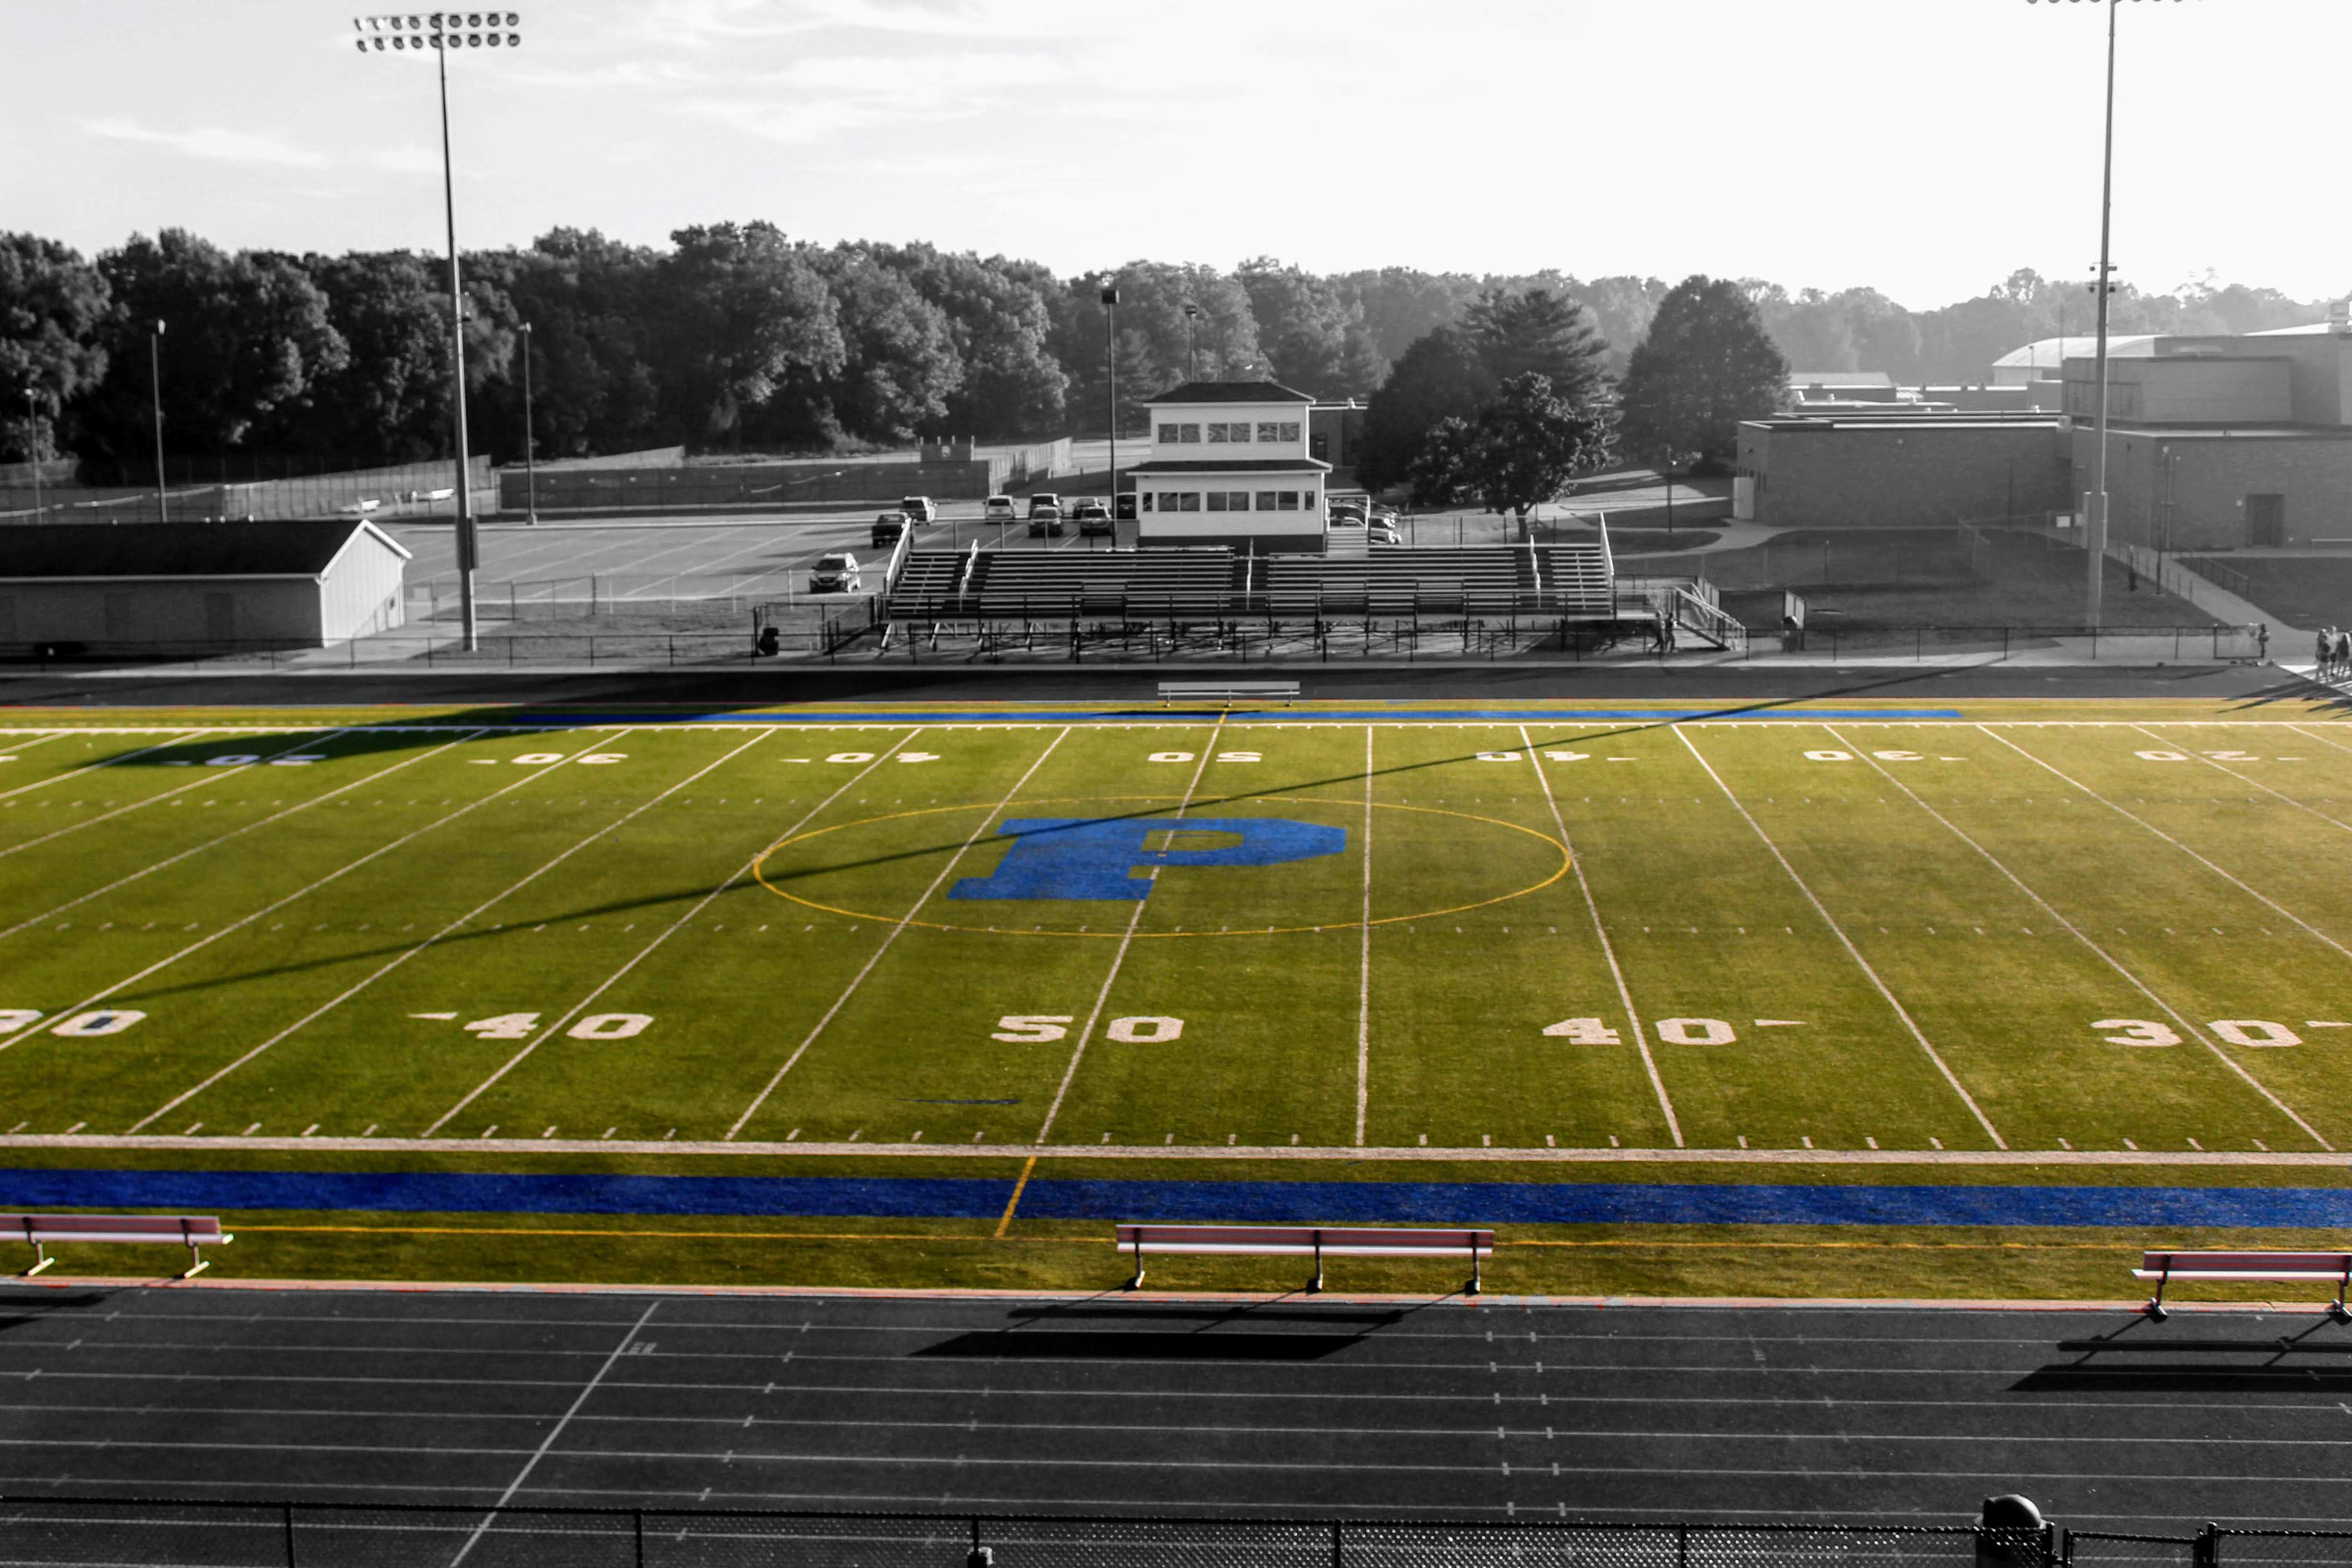 Intro to Photography picture of STREIDL FIELD